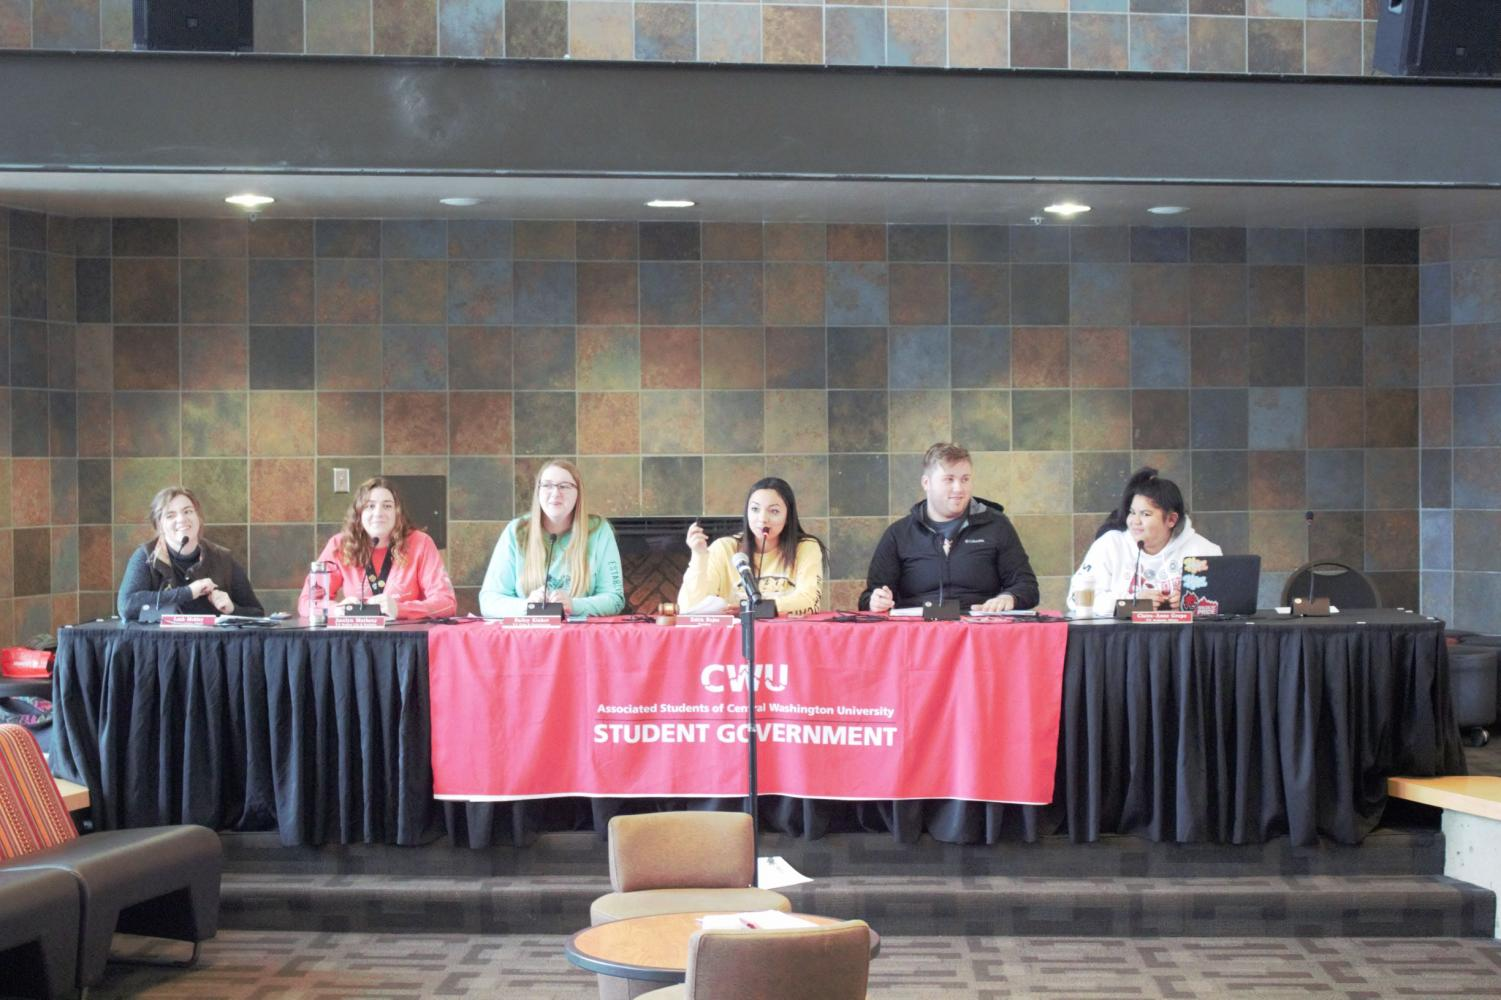 ASCWU has an open public meeting in the SURC pit every Monday. From left to right: Leah Mobley, Jocelyn Matheny, Bailey Klinker, Edith Rojas, Kane LeMaster and Claire Anne-Grepo.